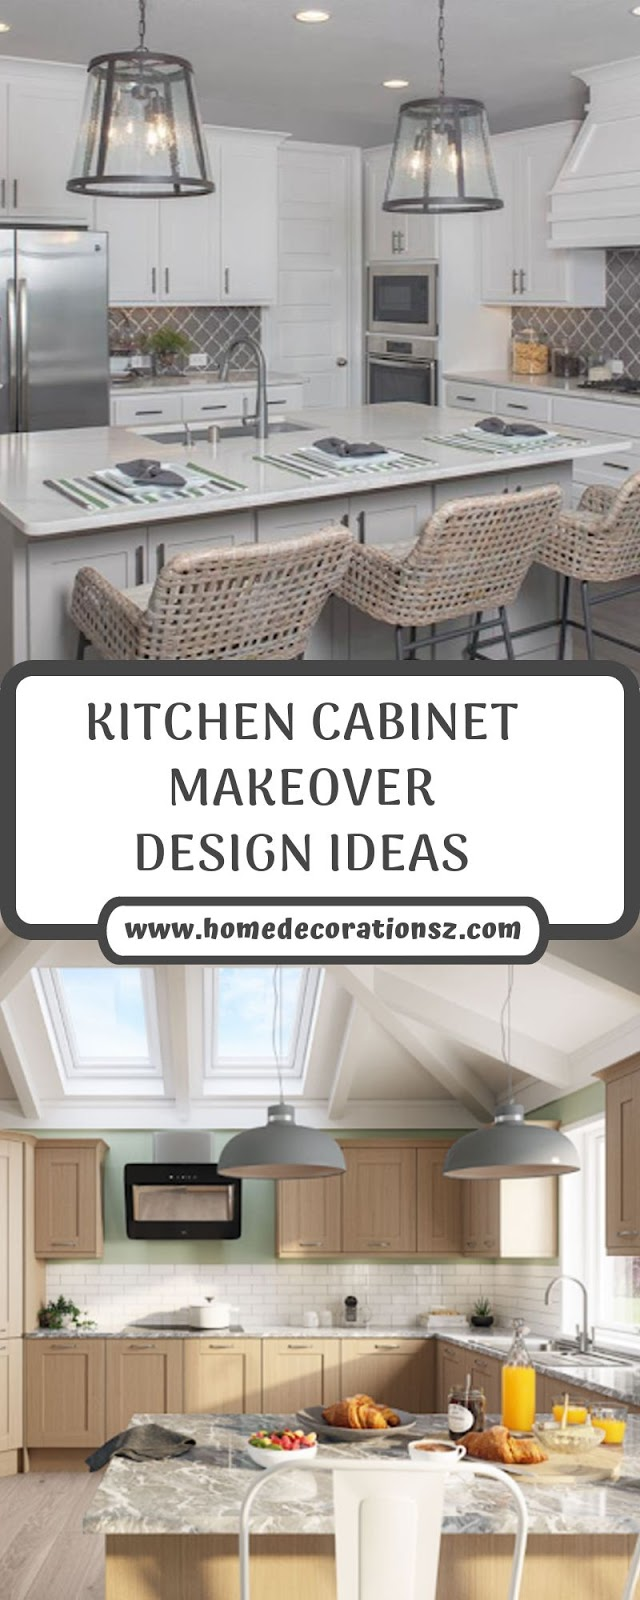 KITCHEN CABINET MAKEOVER DESIGN IDEAS